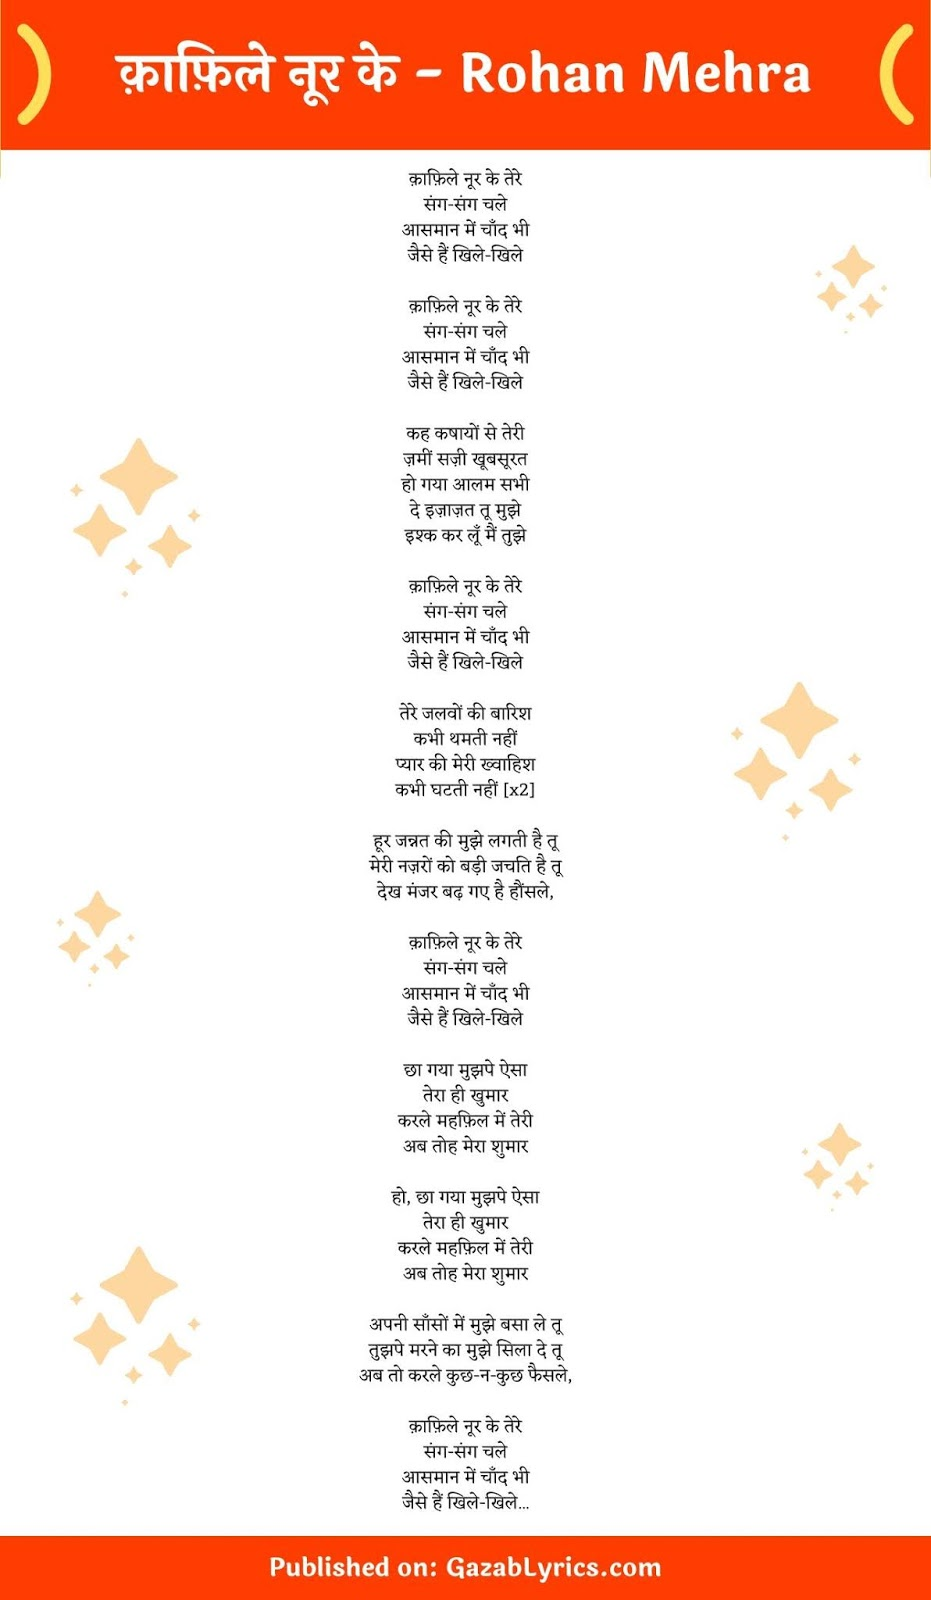 Qafile Noor Ke song lyrics image